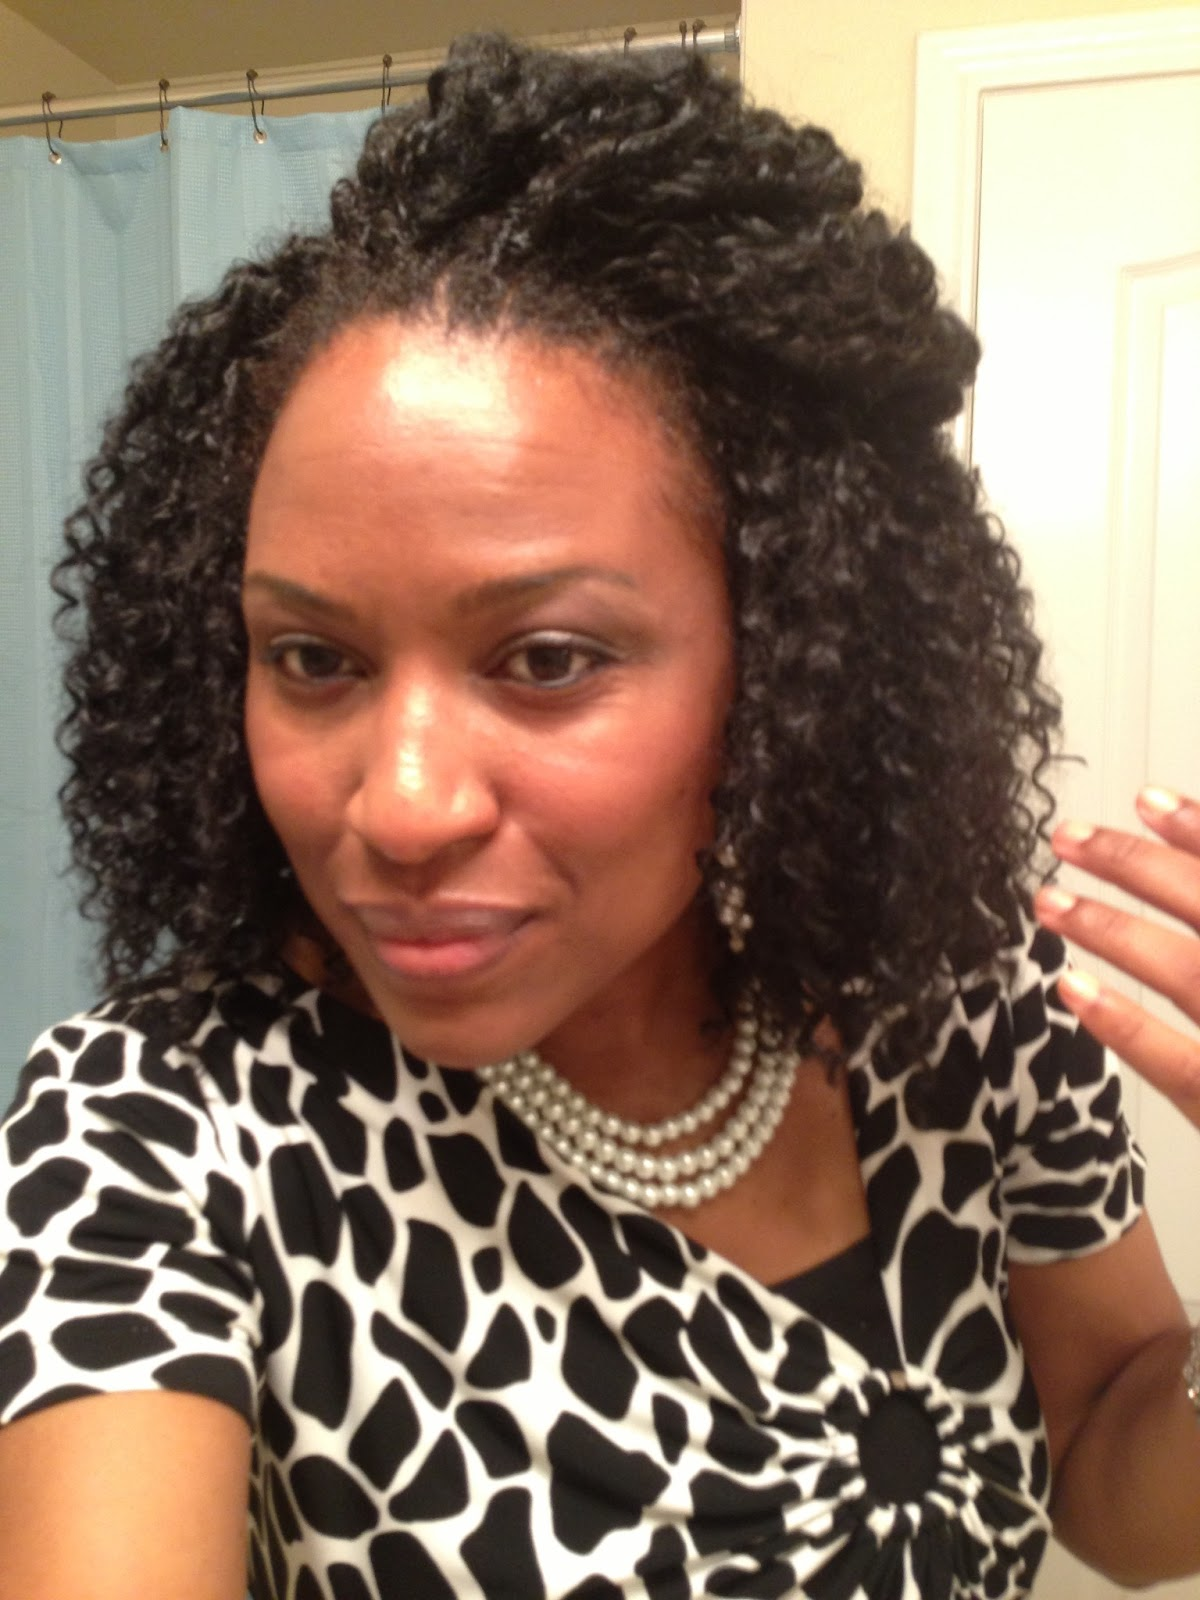 Crochet Hair Memphis Tn : HAIR Get Maximum Wear out of your Crochet Braids My 8 week Update